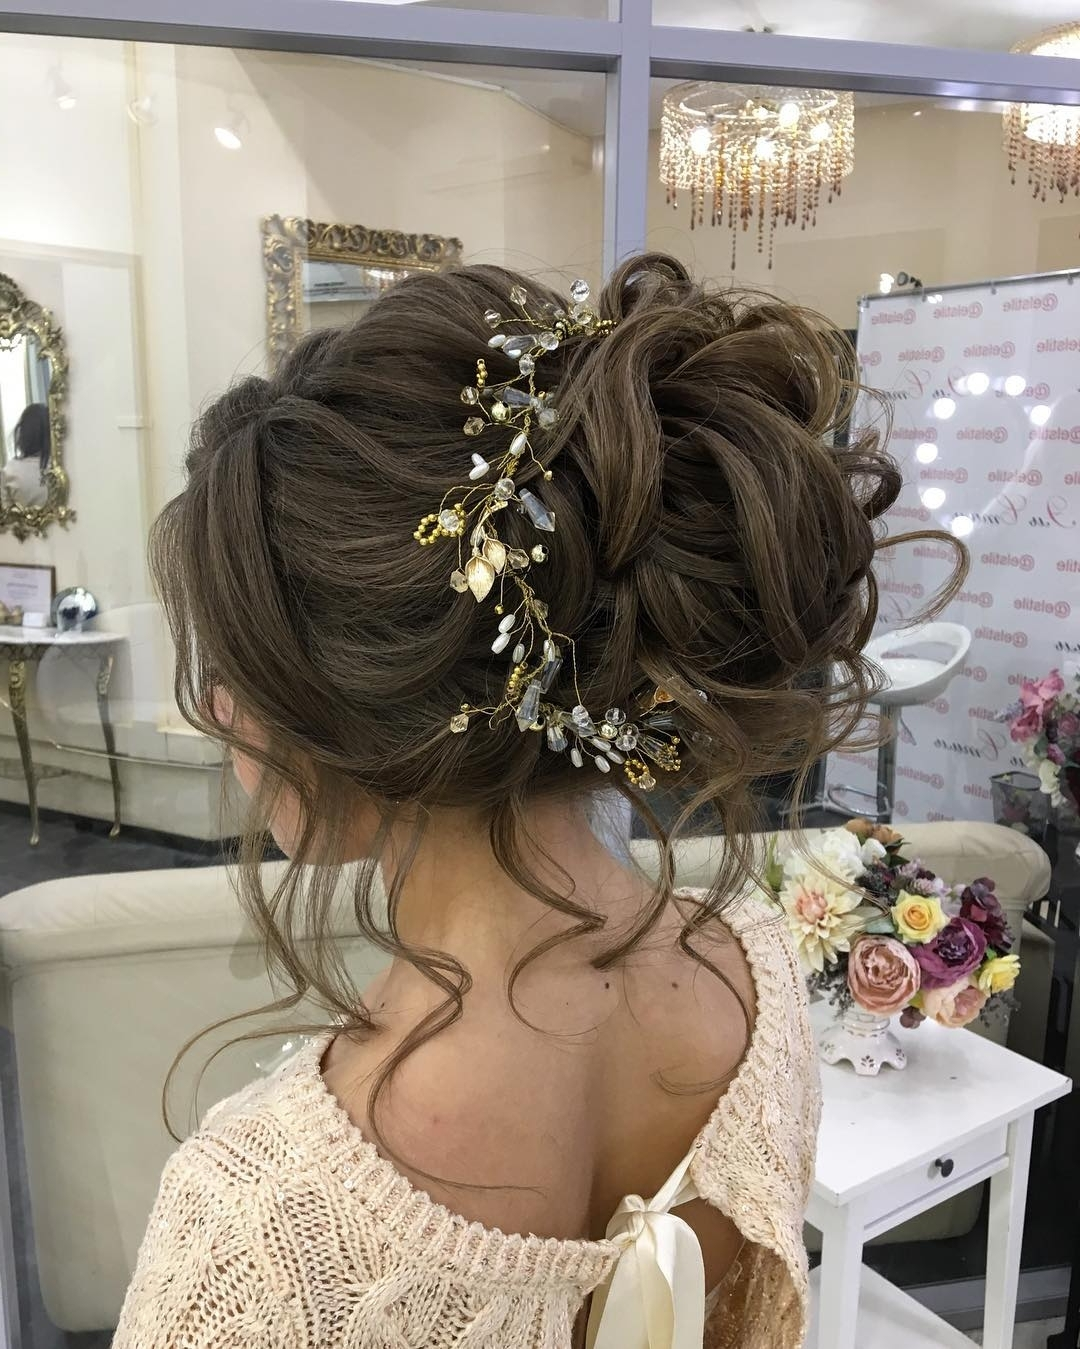 Style Up Messy Bun Hairstyle For Dramatic Romantic Bridal Beauty Within Popular Messy Bun Wedding Hairstyles (View 14 of 15)